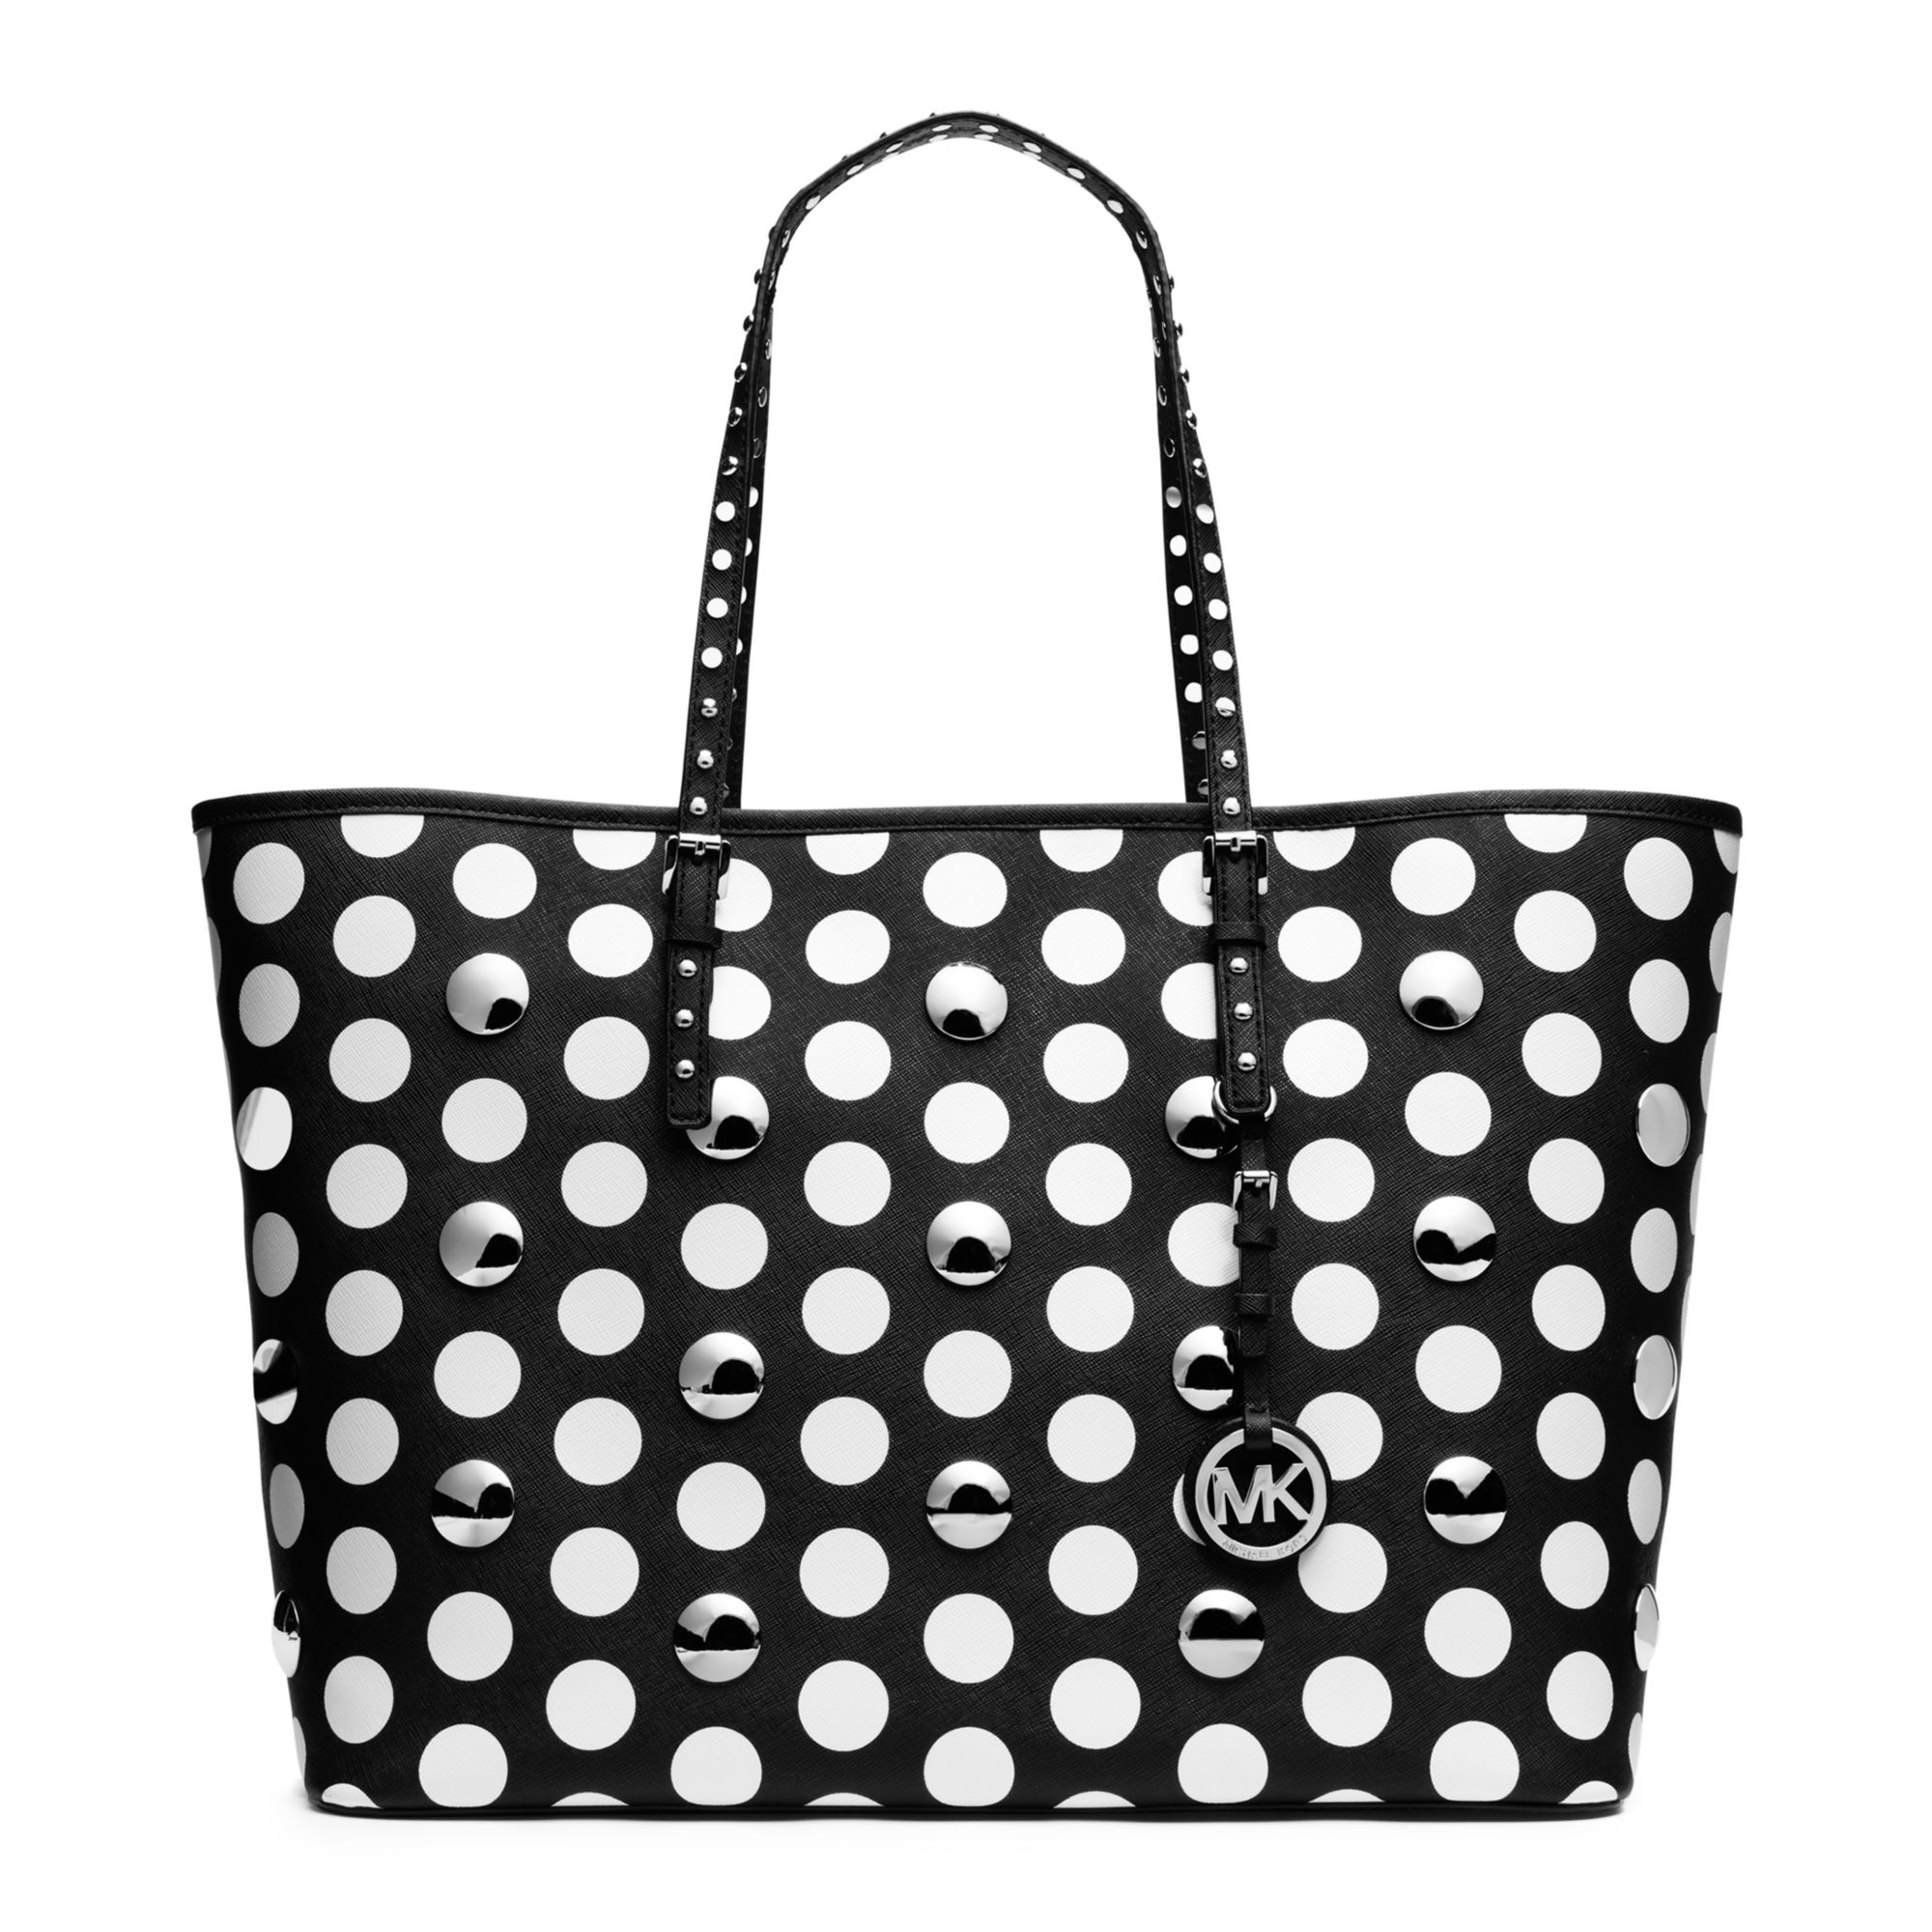 7b6ca7a588645e Michael Kors Jet Set Travel Dot Stud Medium Tote in Black - Lyst